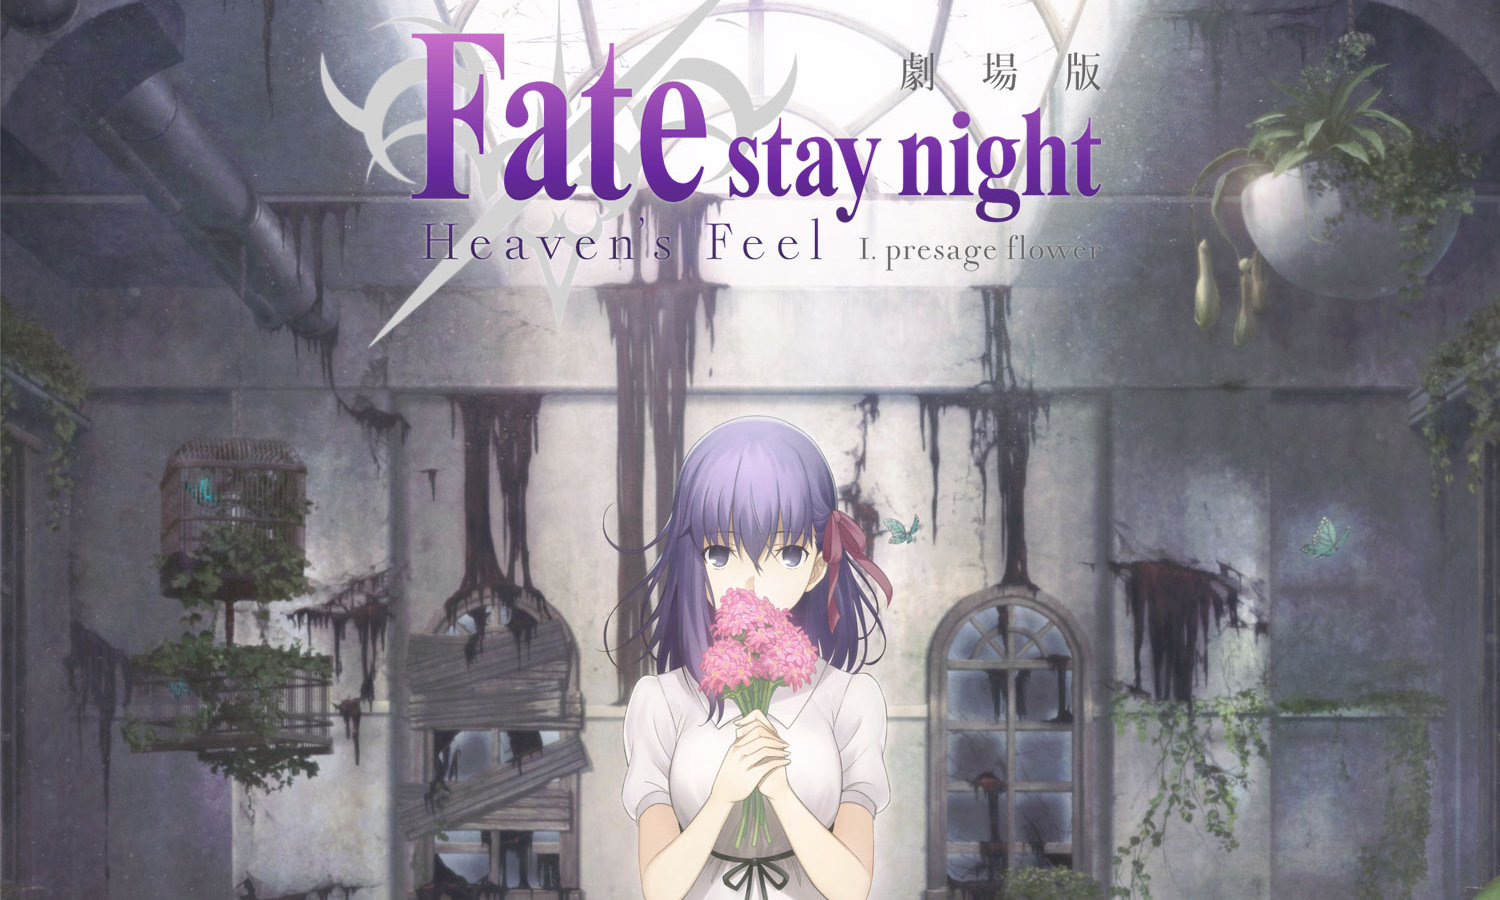 Fate/stay night: Heaven's Feel